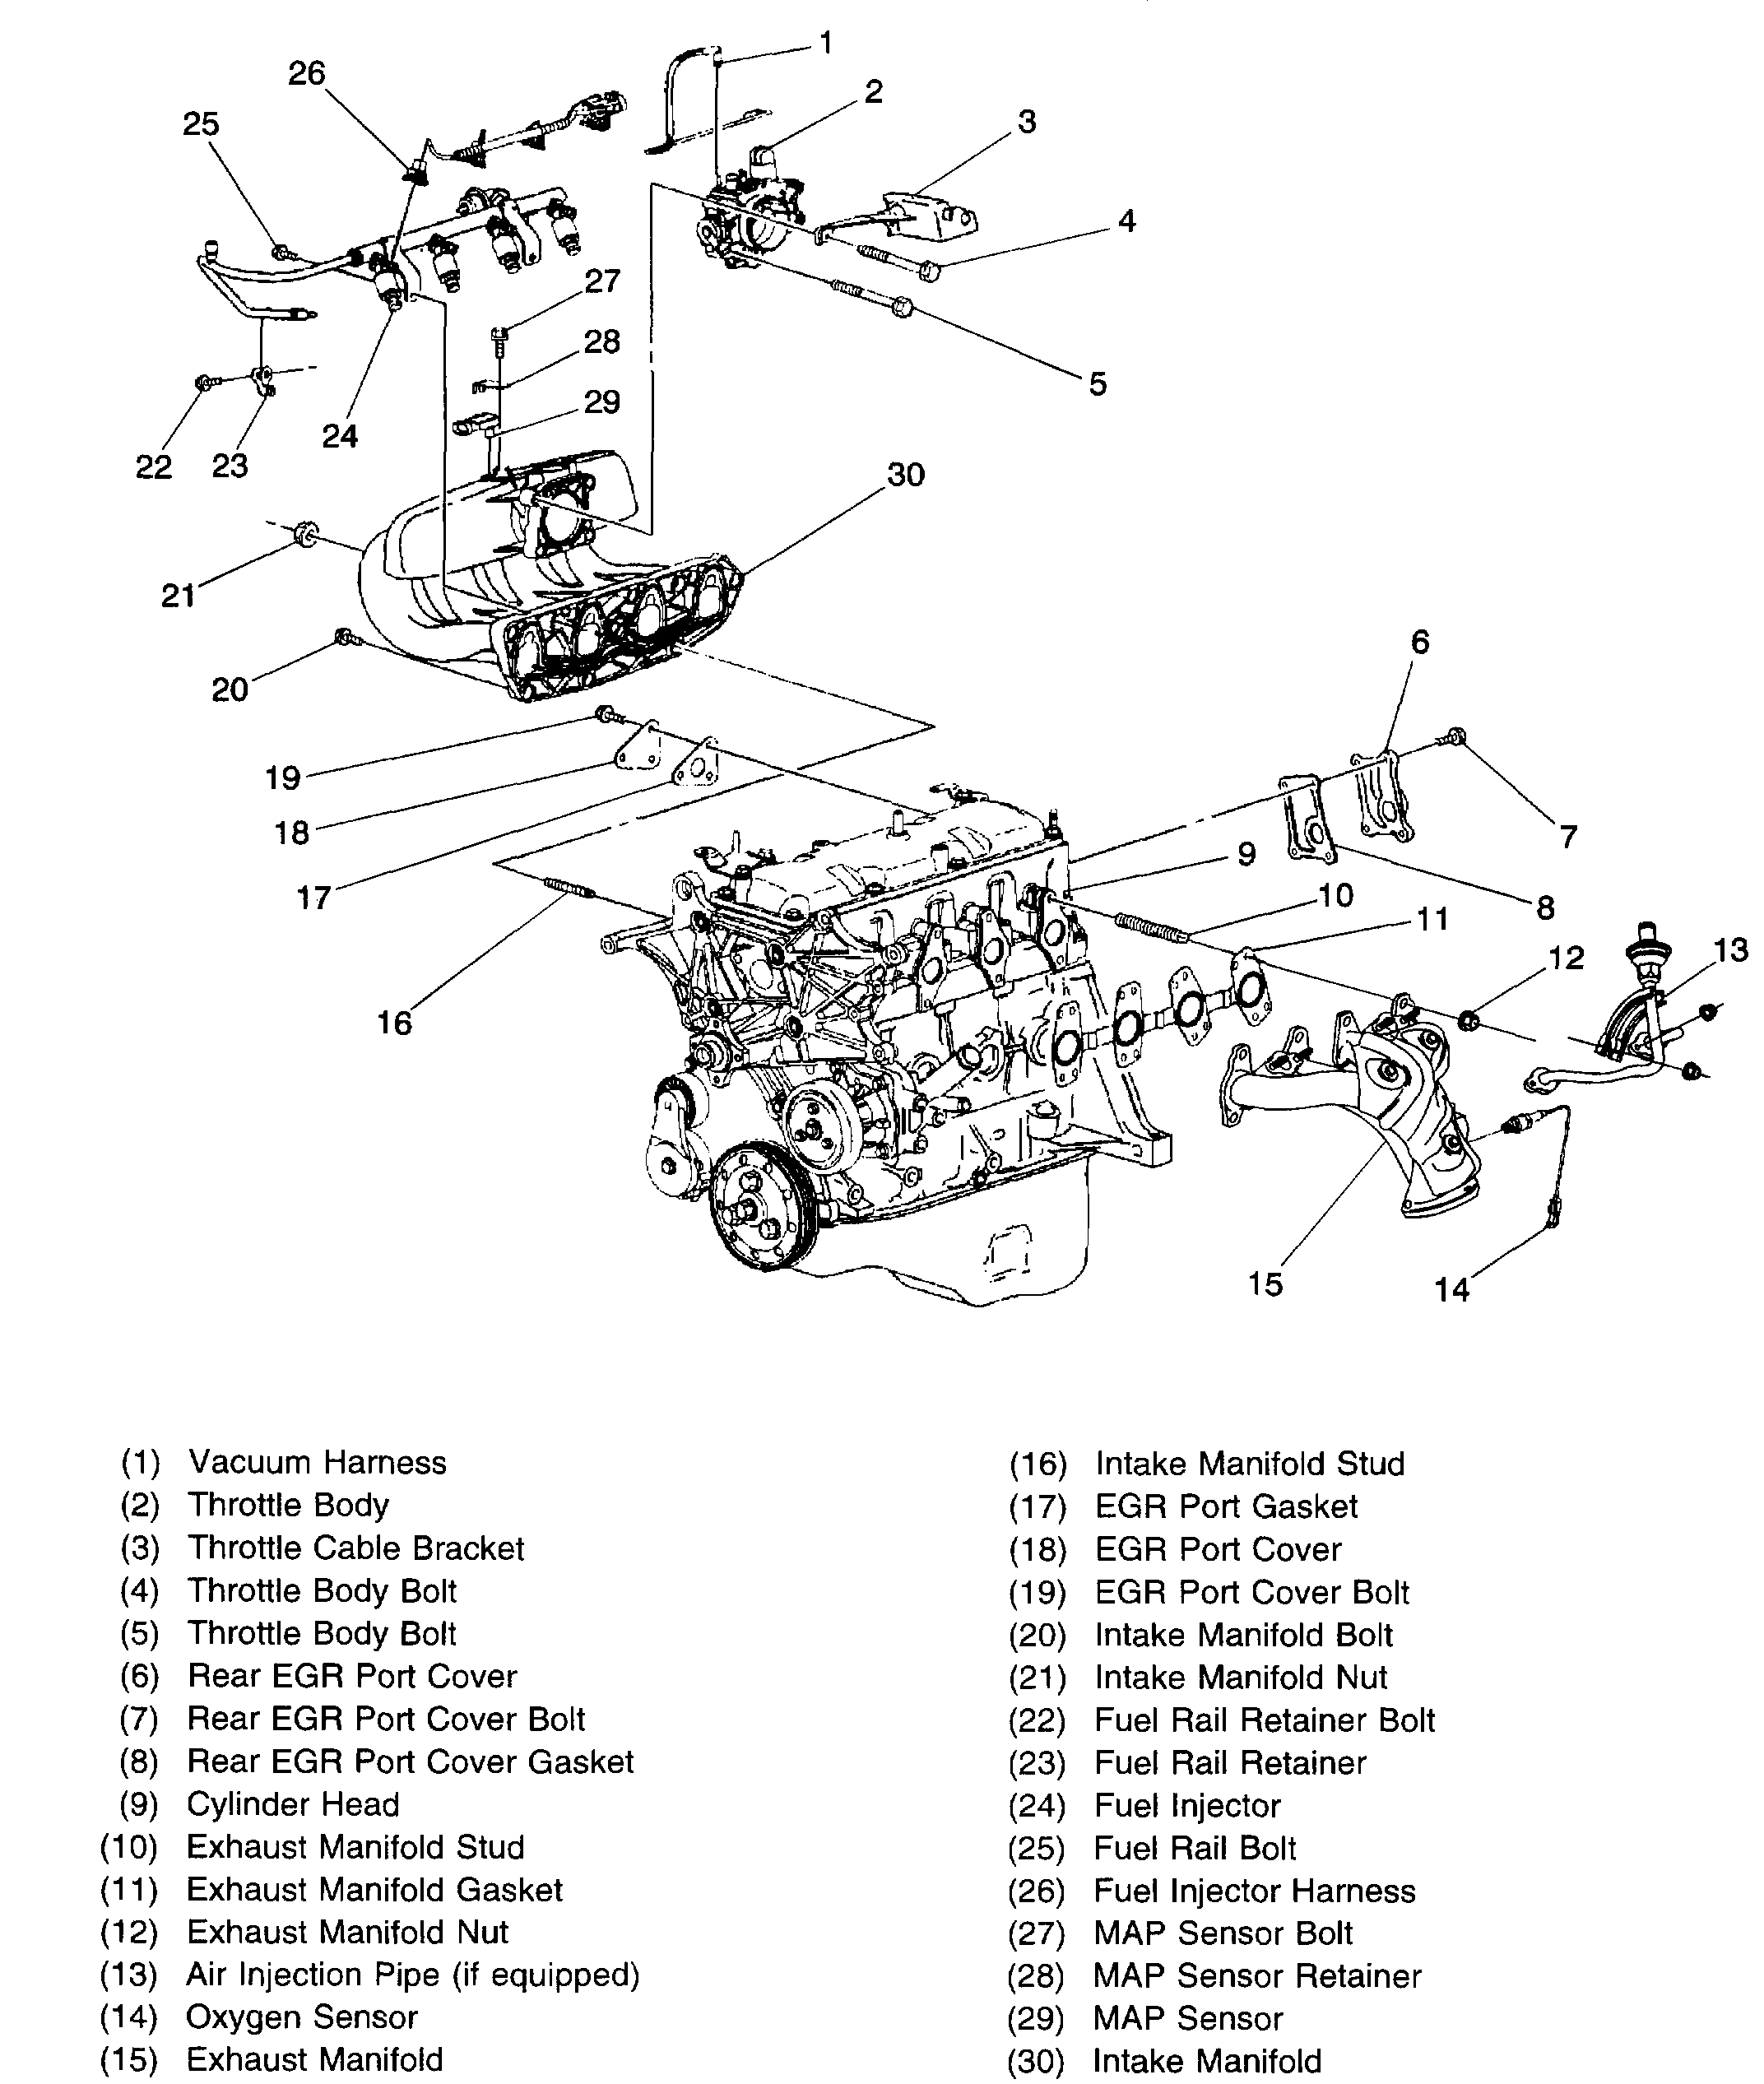 Ignition Switch Wiring Diagram 1998 Chevy S10 2.2 from www.2carpros.com